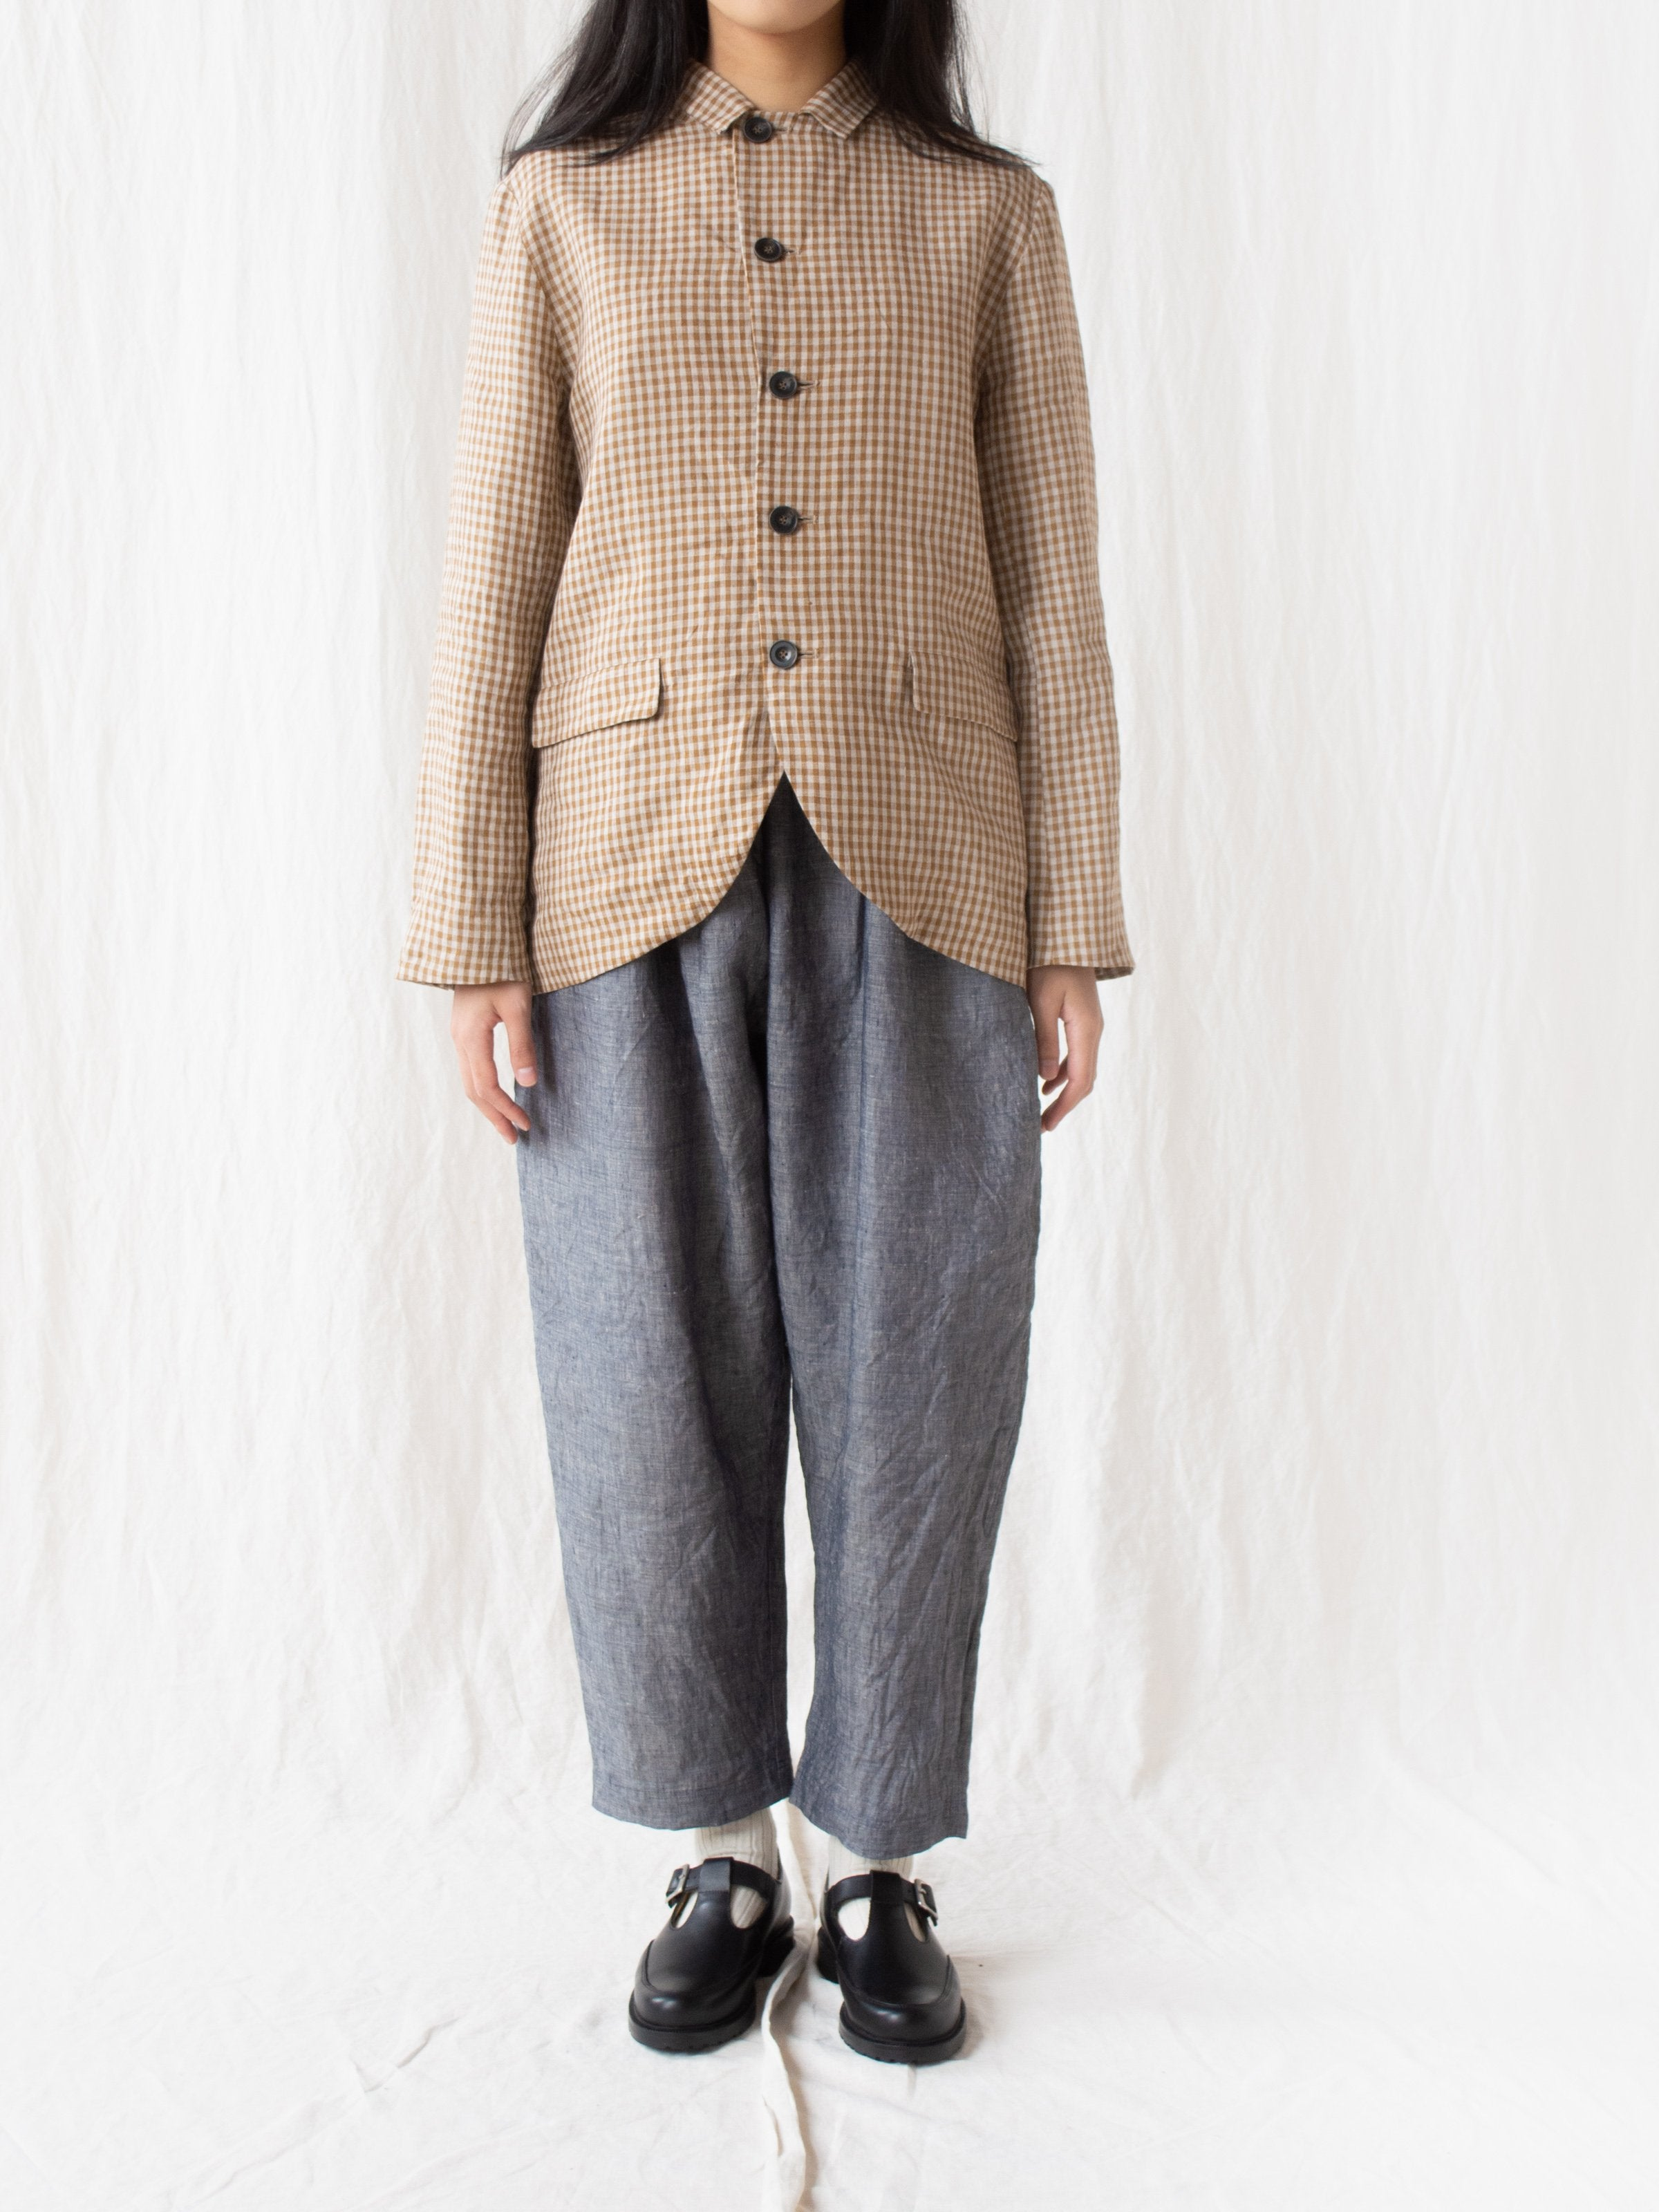 Namu Shop - Ichi Antiquites Linen Dungaree Pants - Washed Navy